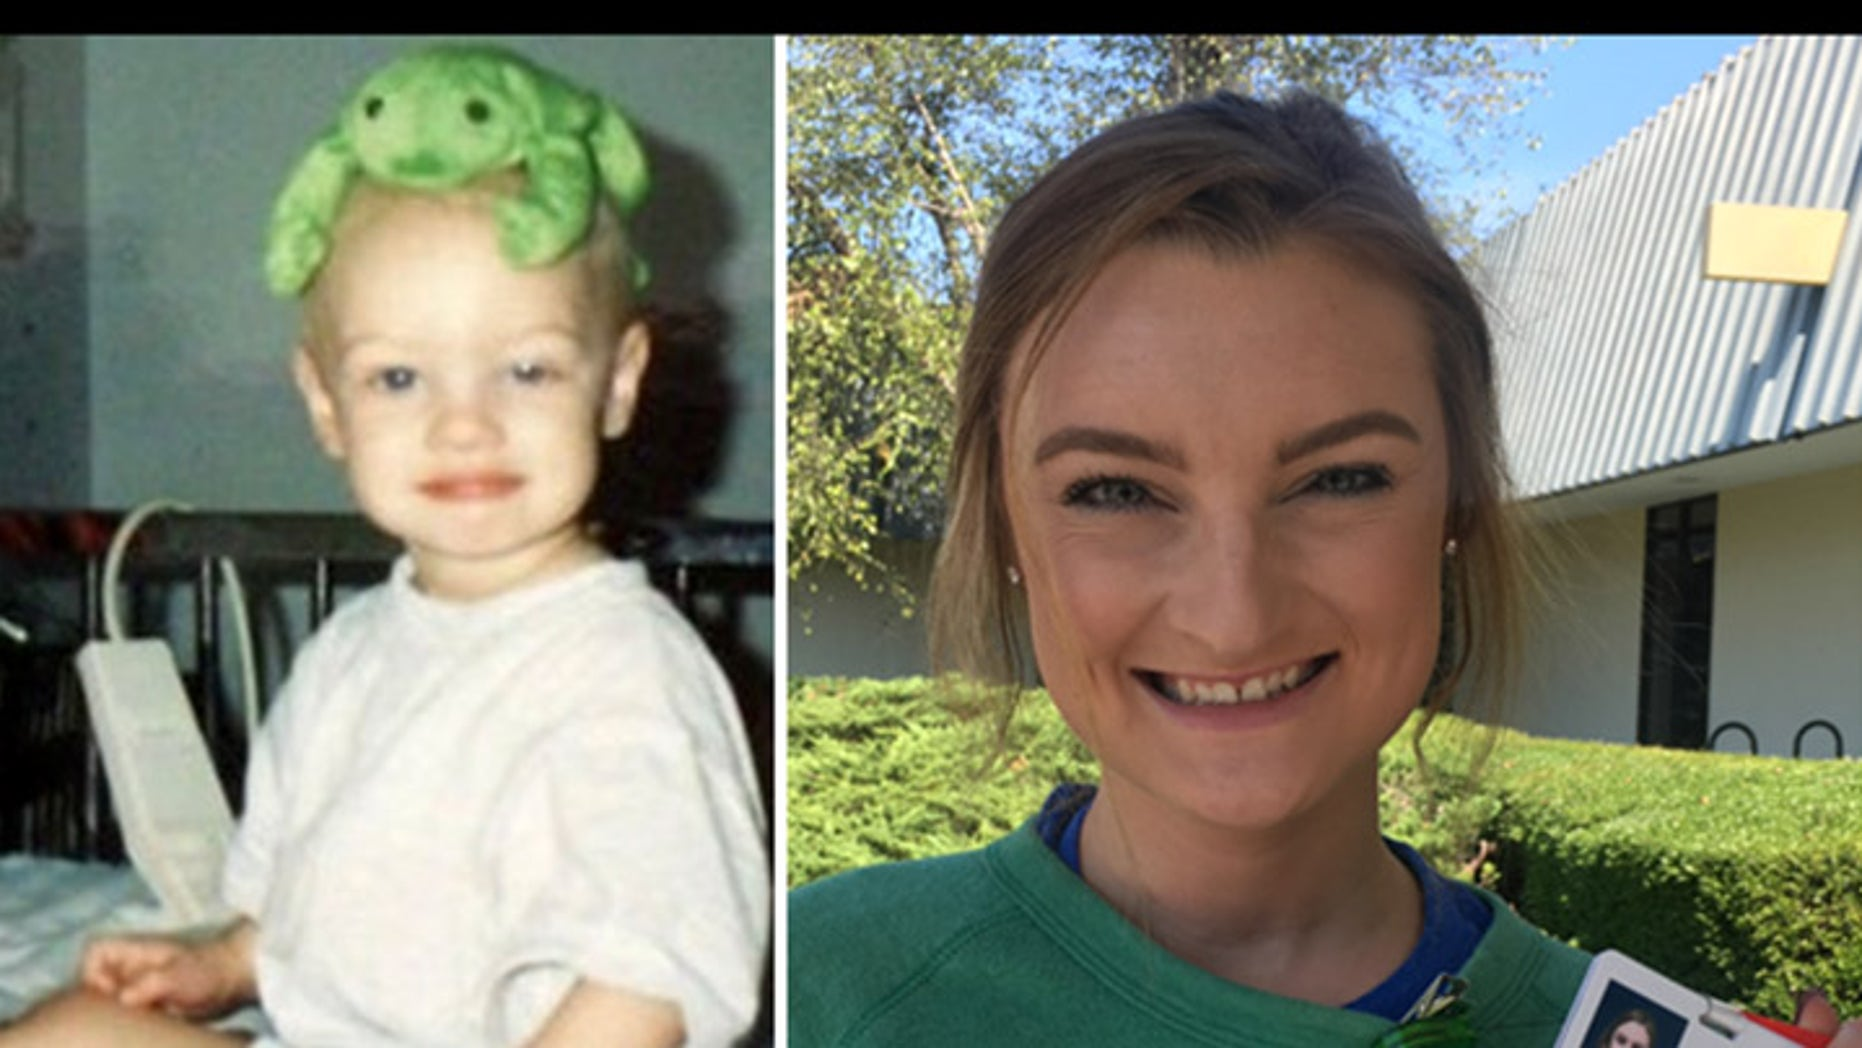 Children's Healthcare of Atlanta shared the above photos of Montana, where she is seen as a patient on the left, and as a nurse on the right.